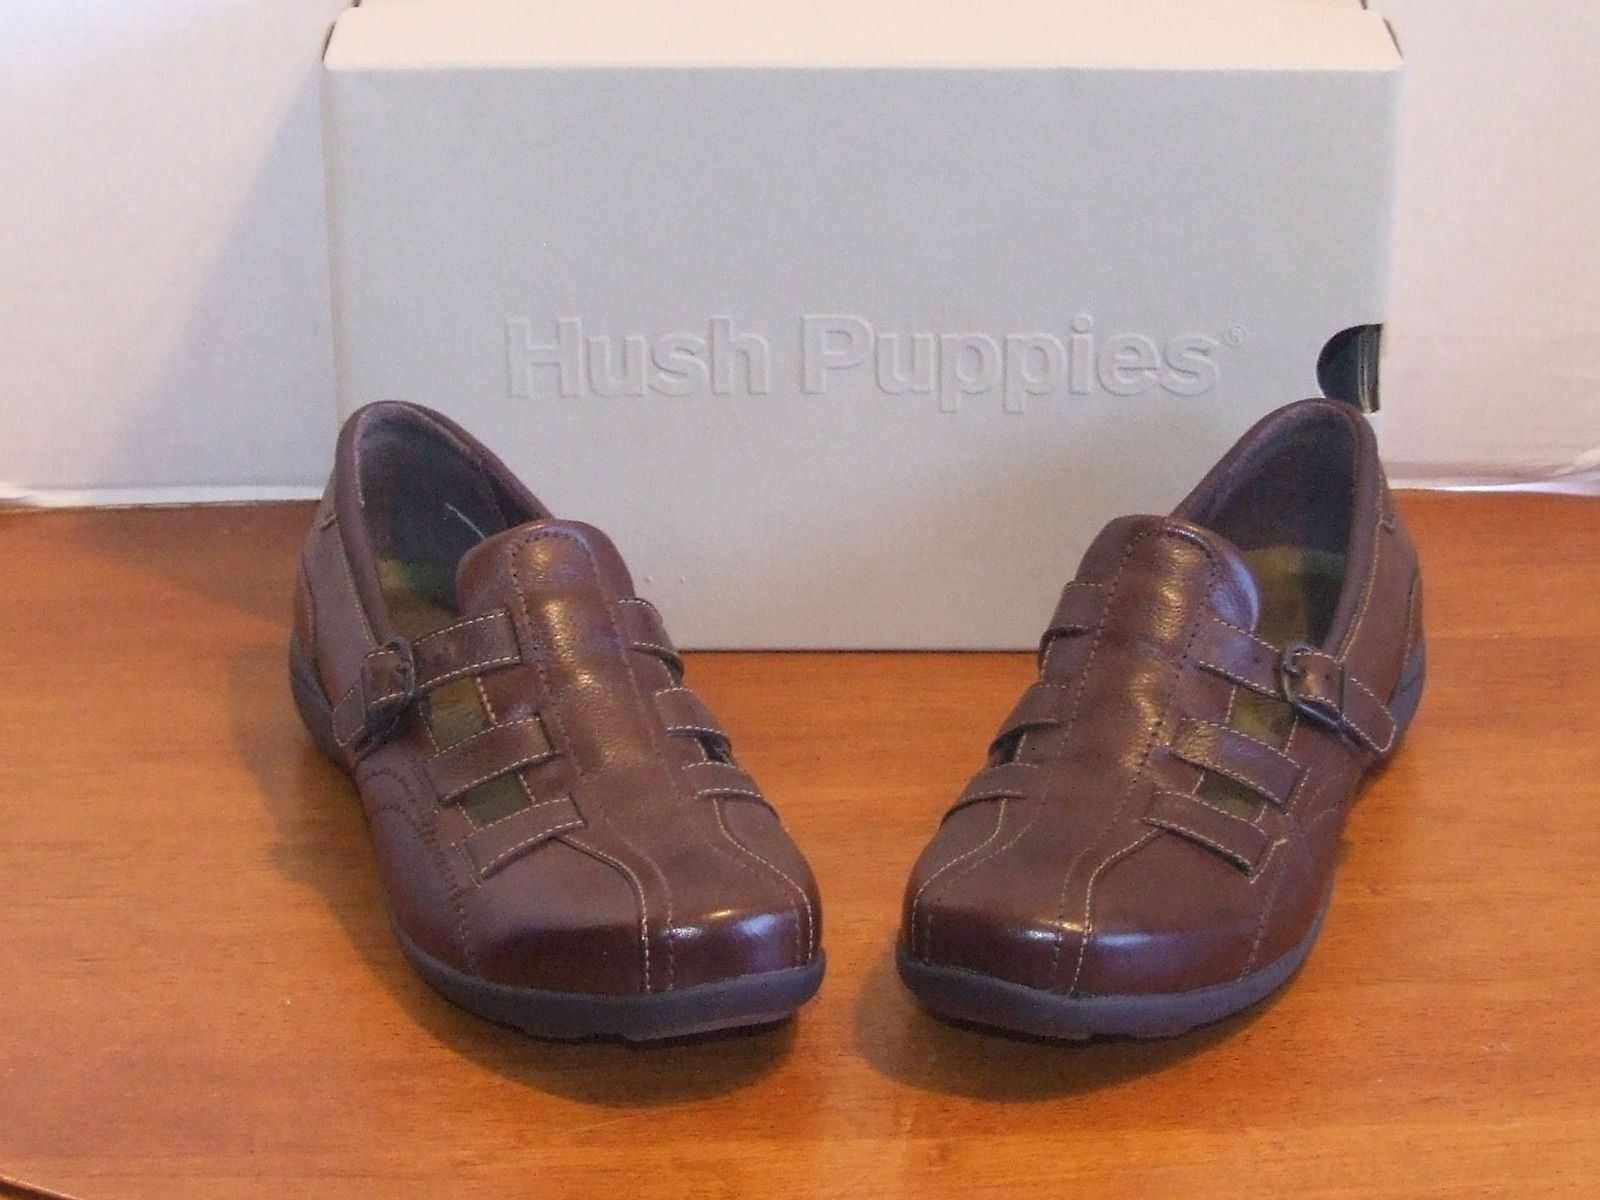 Hush Puppies Ionic Coffee Bean leather flats chaussures 10 m